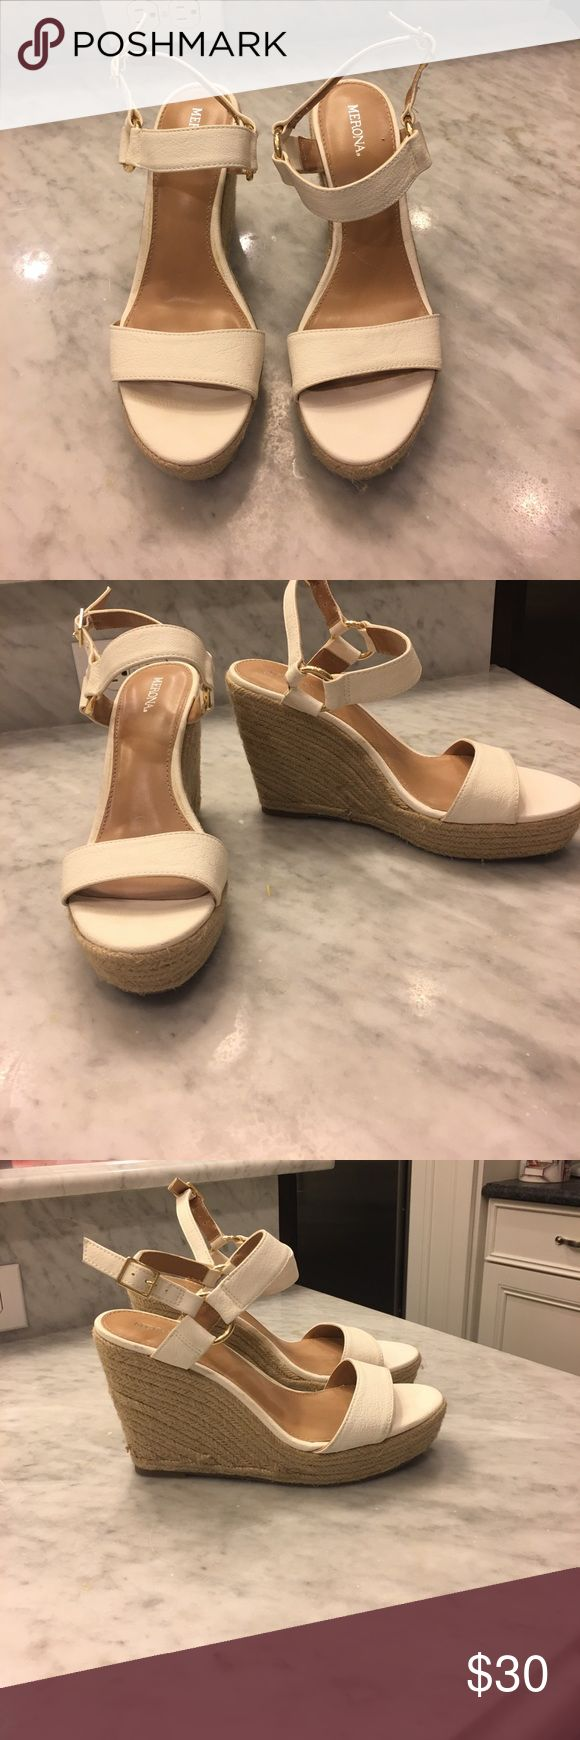 White wedge sandals White wedge sandals size 8 never been worn outside Shoes Wedges